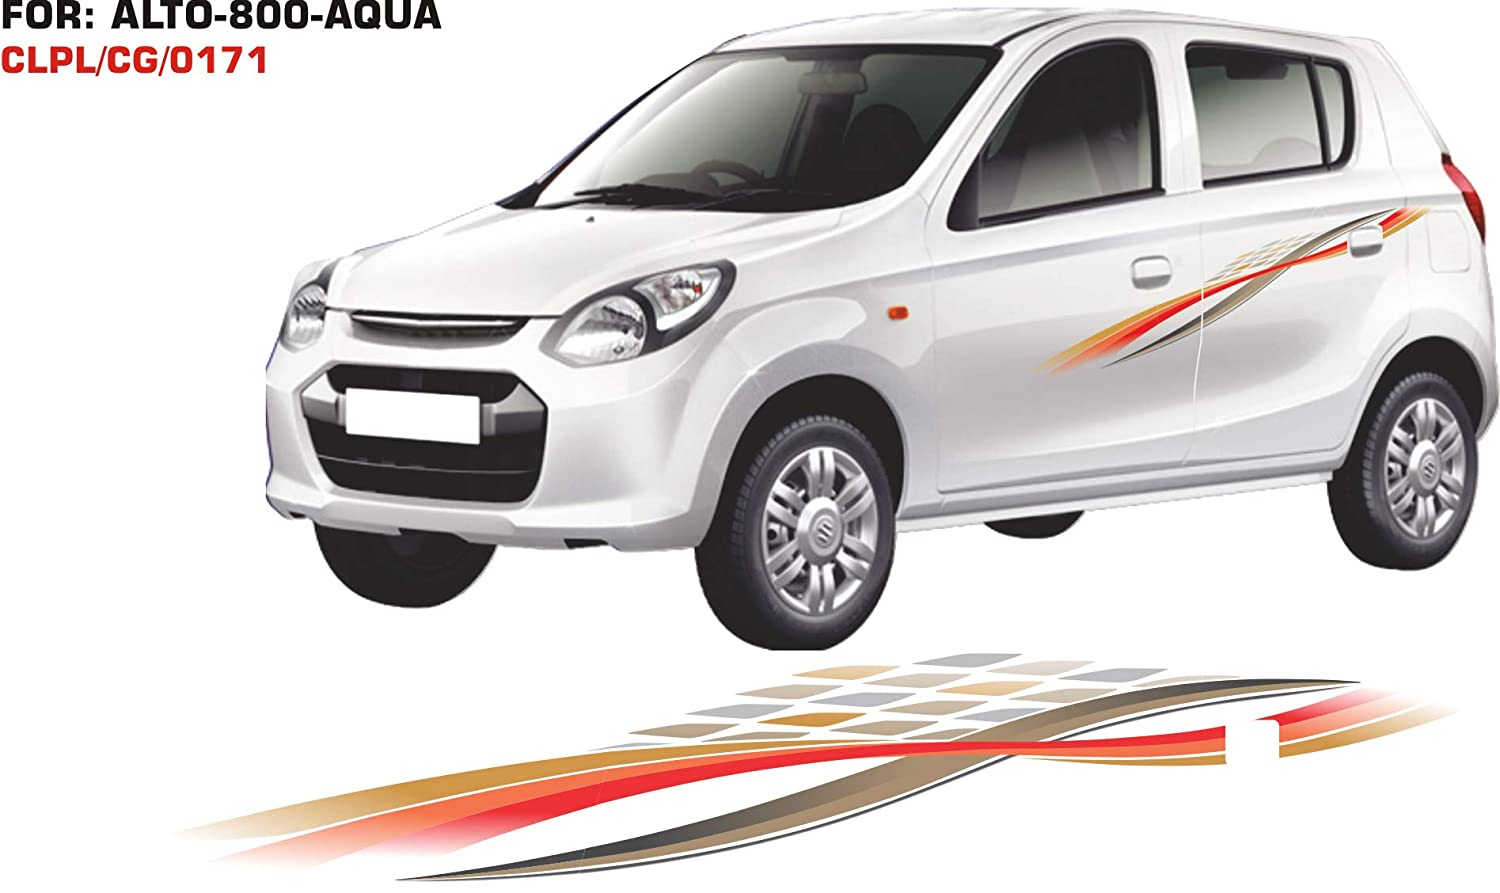 Automaze quara car side decal full body sticker graphics for maruti suzuki alto 0171 gold and